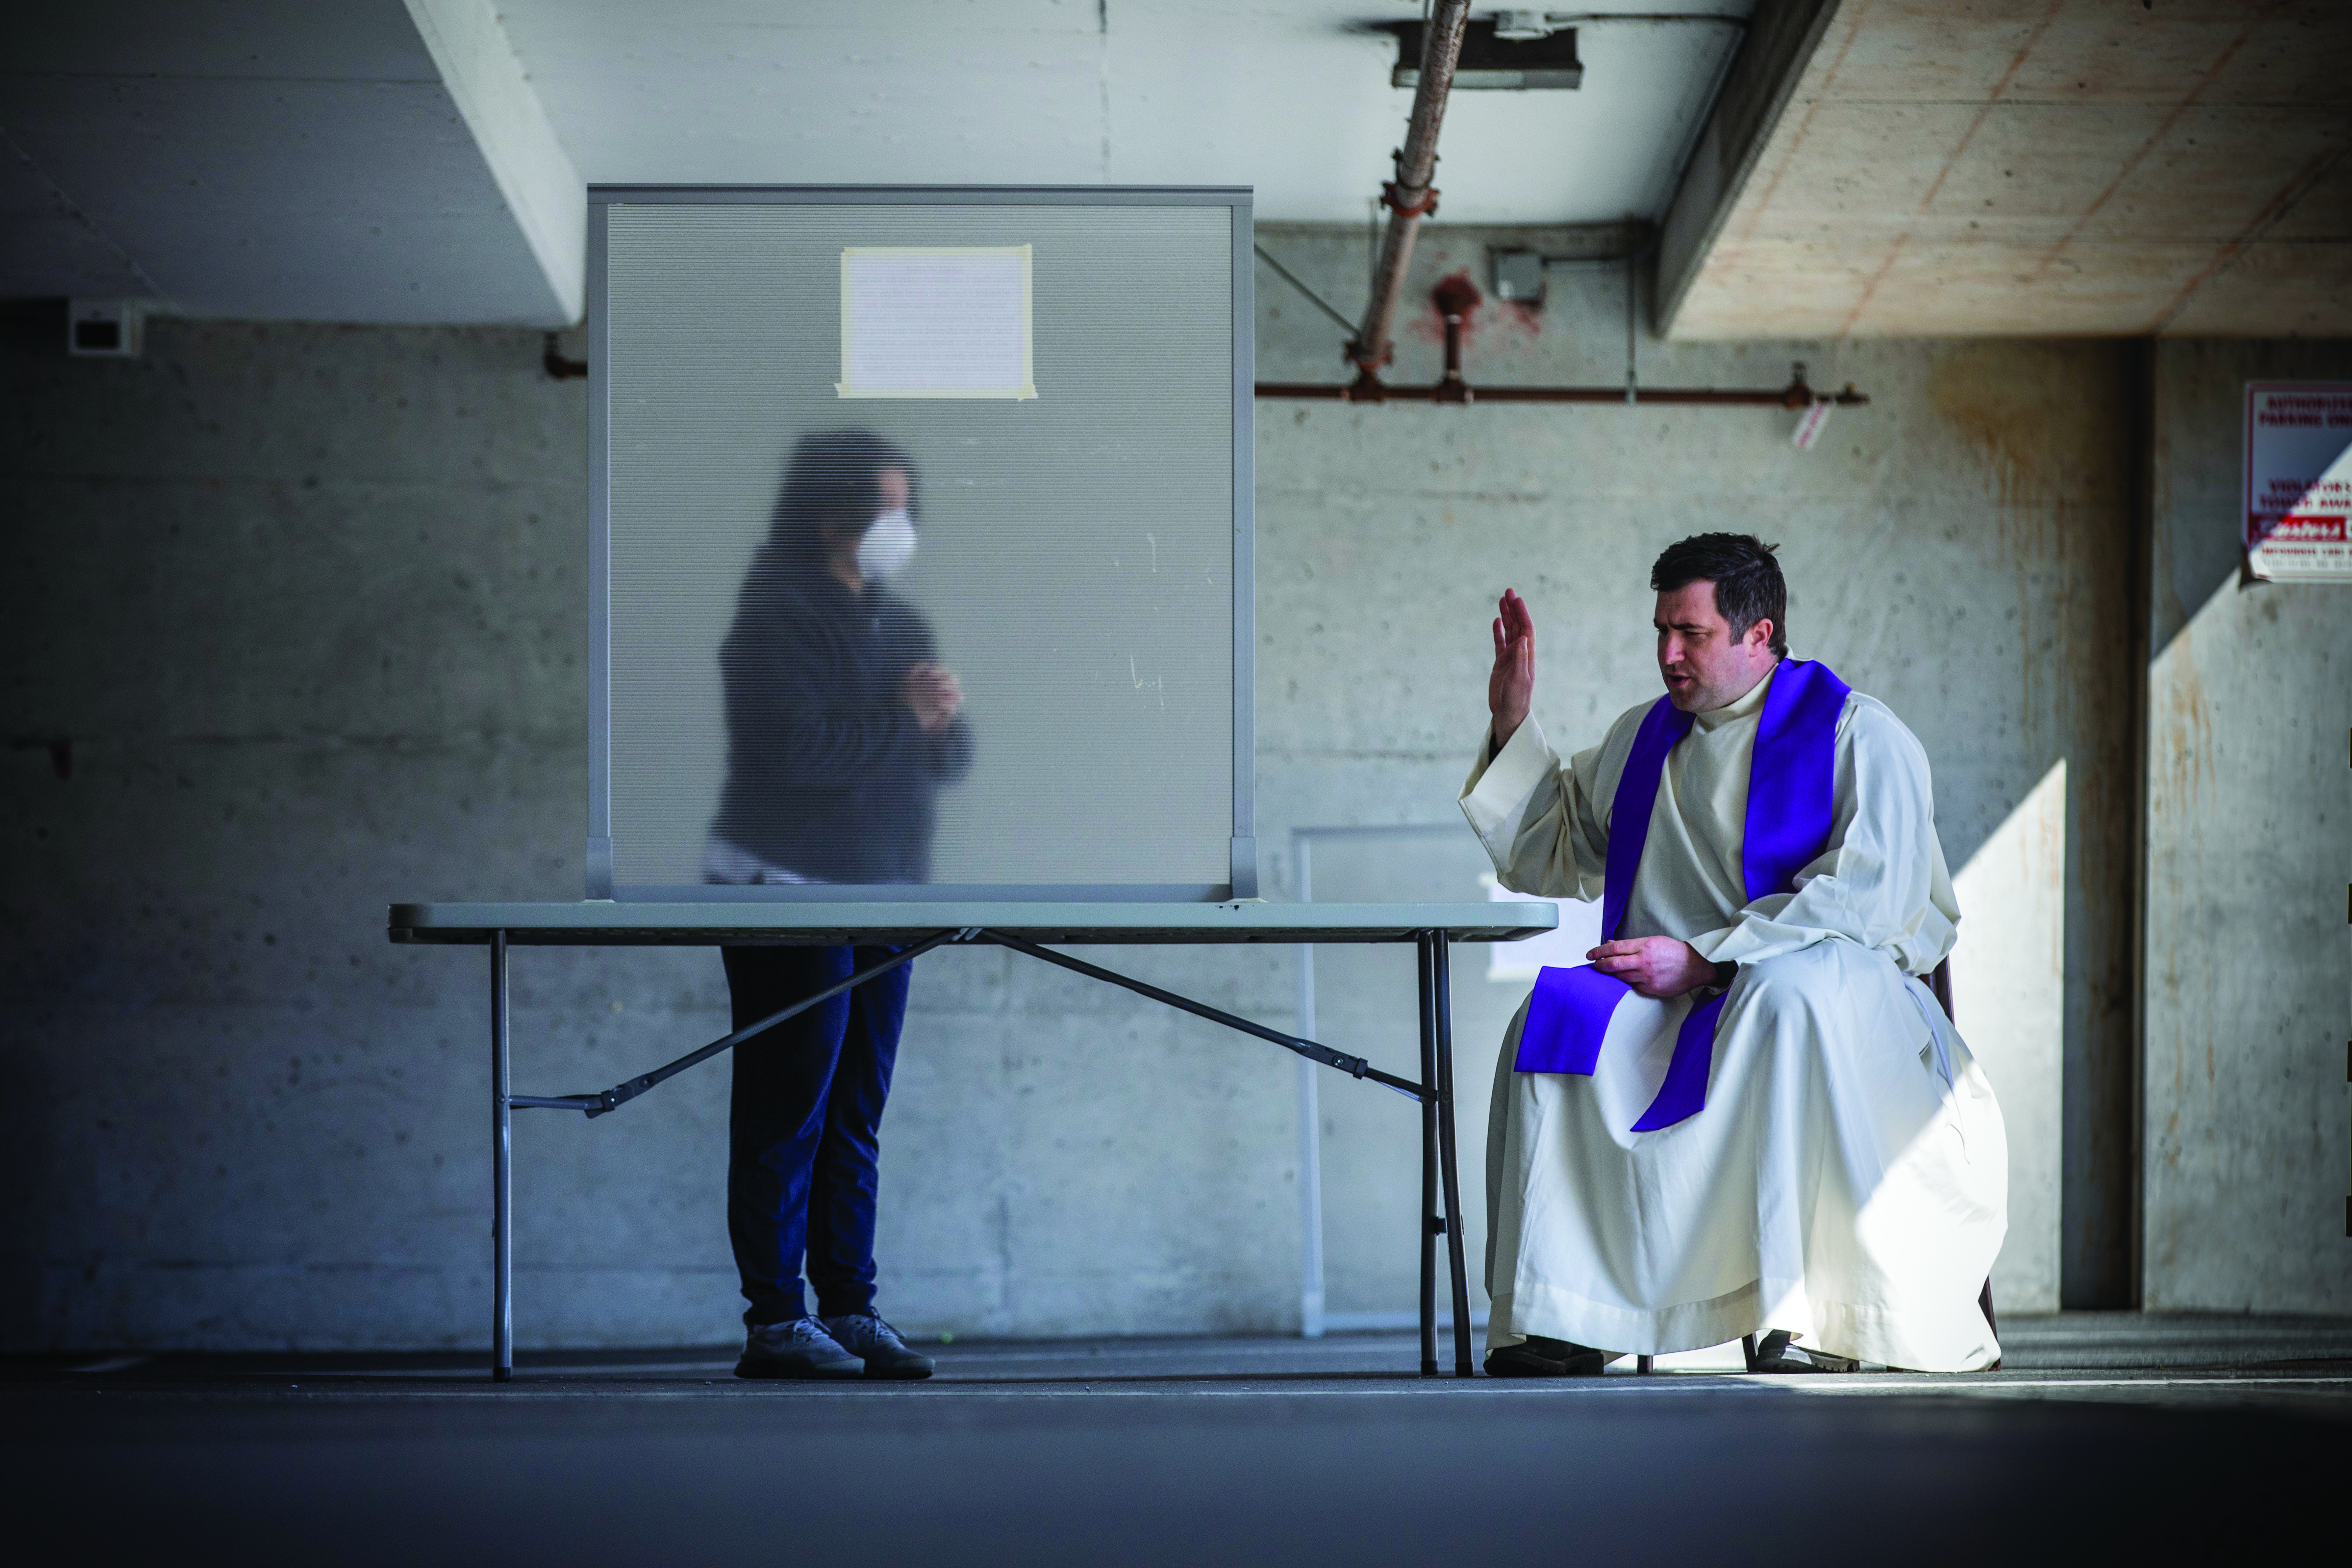 A woman in a mask stands behind a screen while a priest sits in front